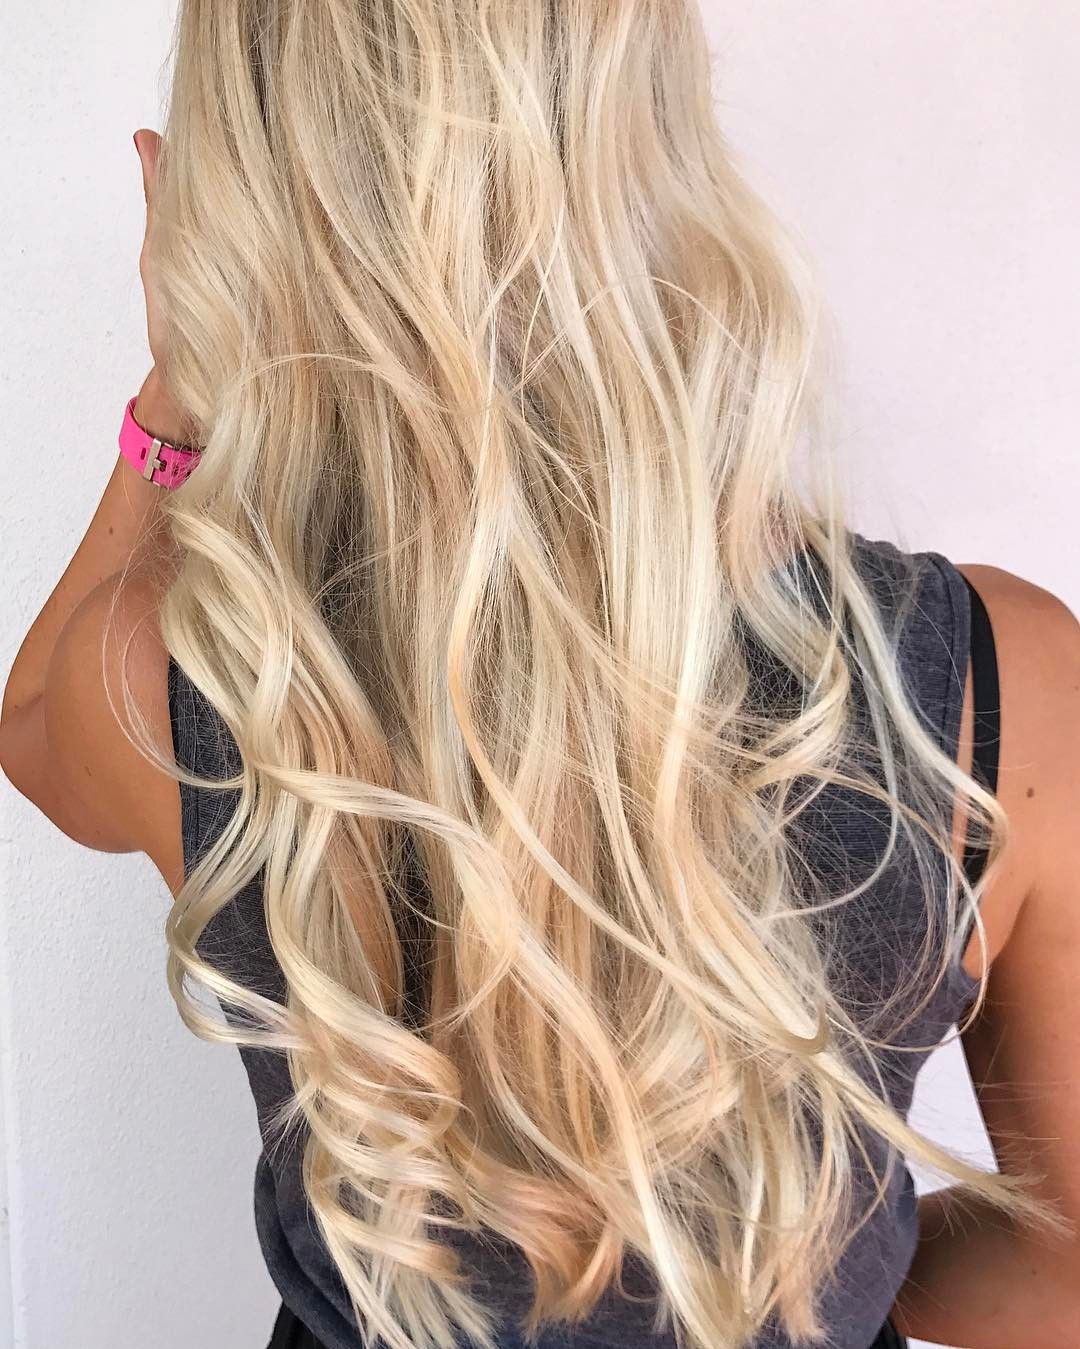 Awesome amazing ways of styling your beach waves ideas to try